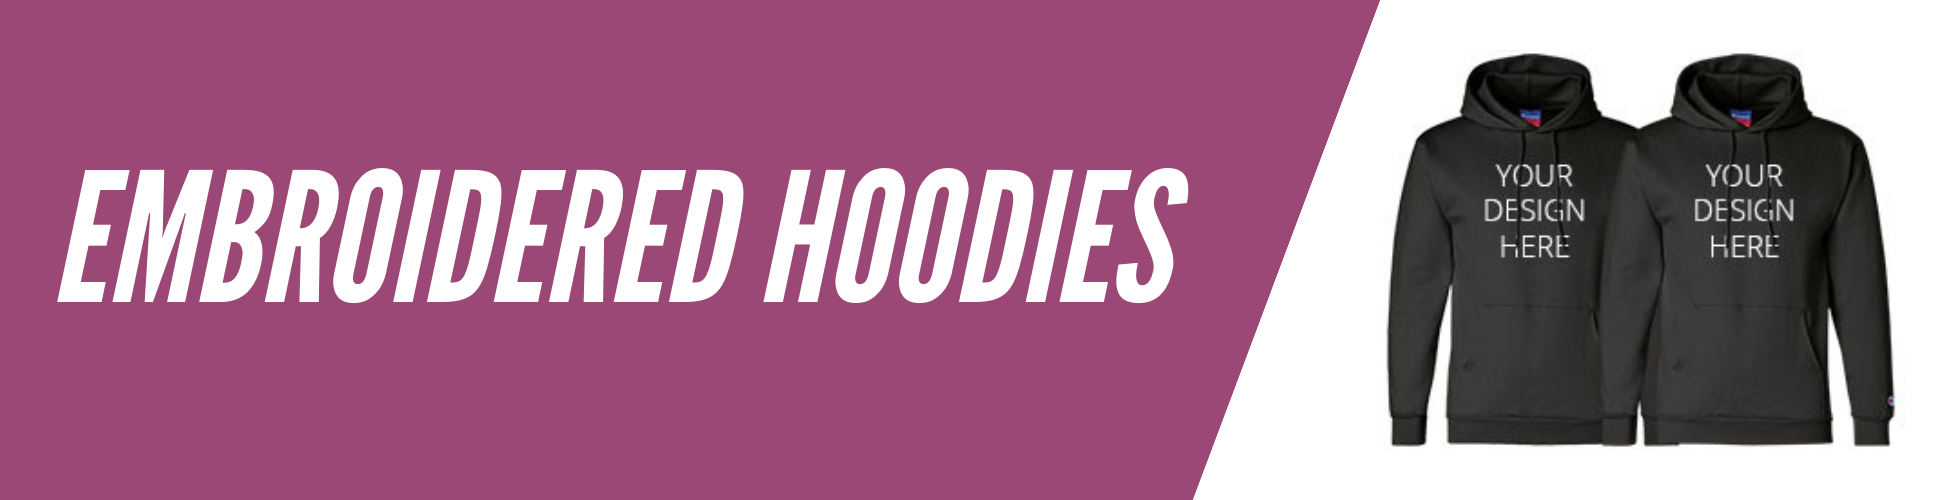 embroidered-hoodies-banner.png